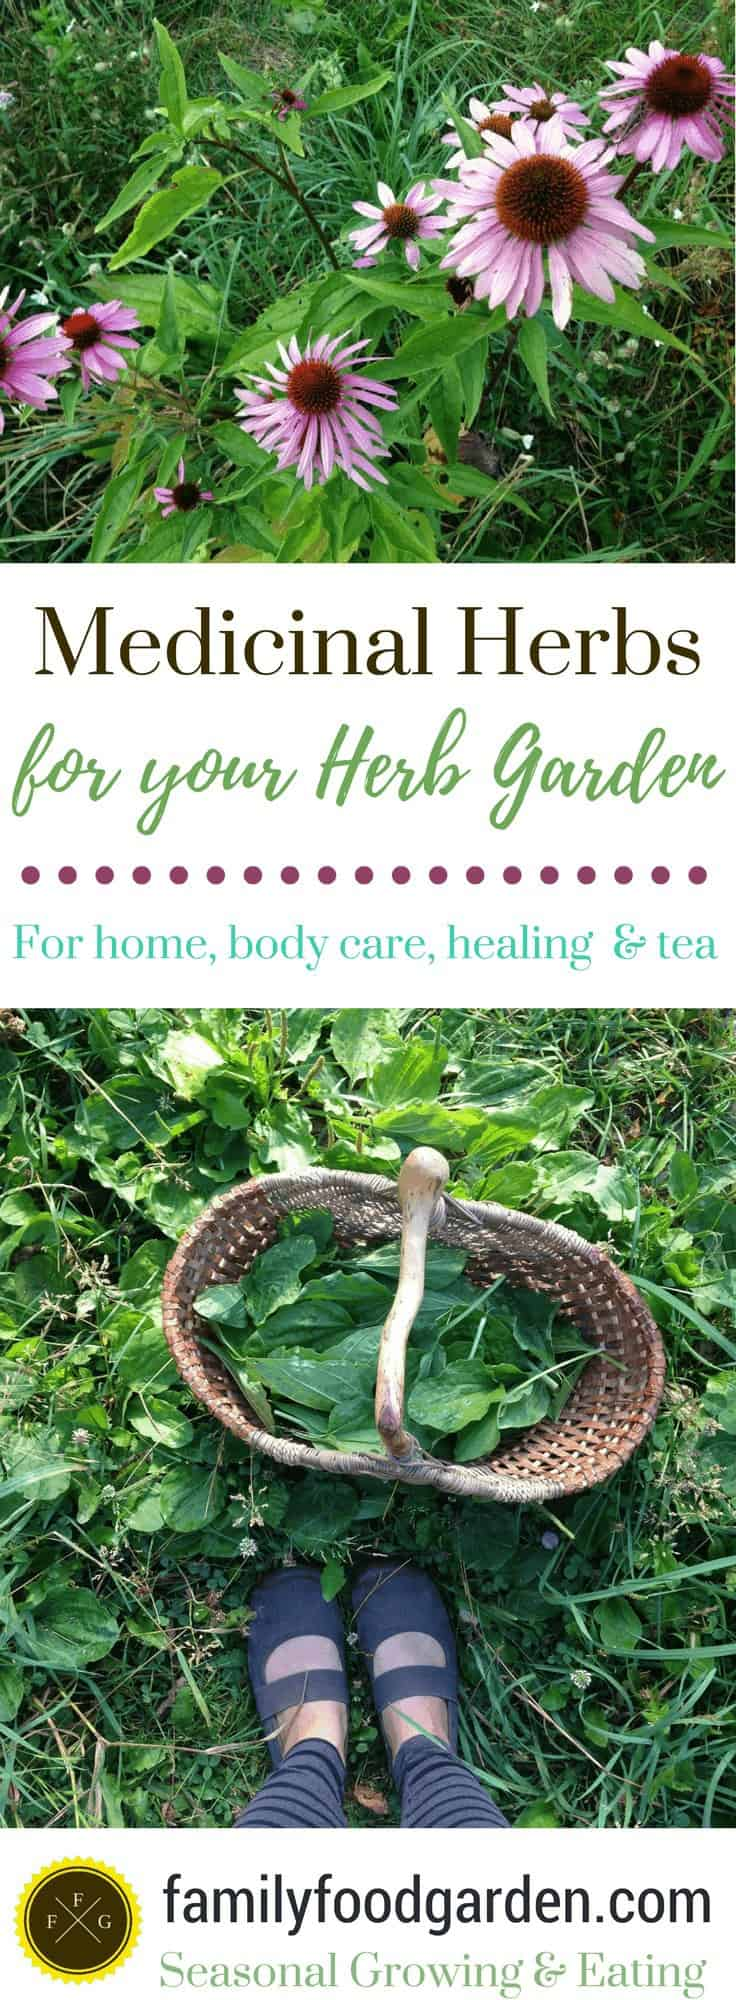 Medicinal Herbs to Plant in your Herb Garden